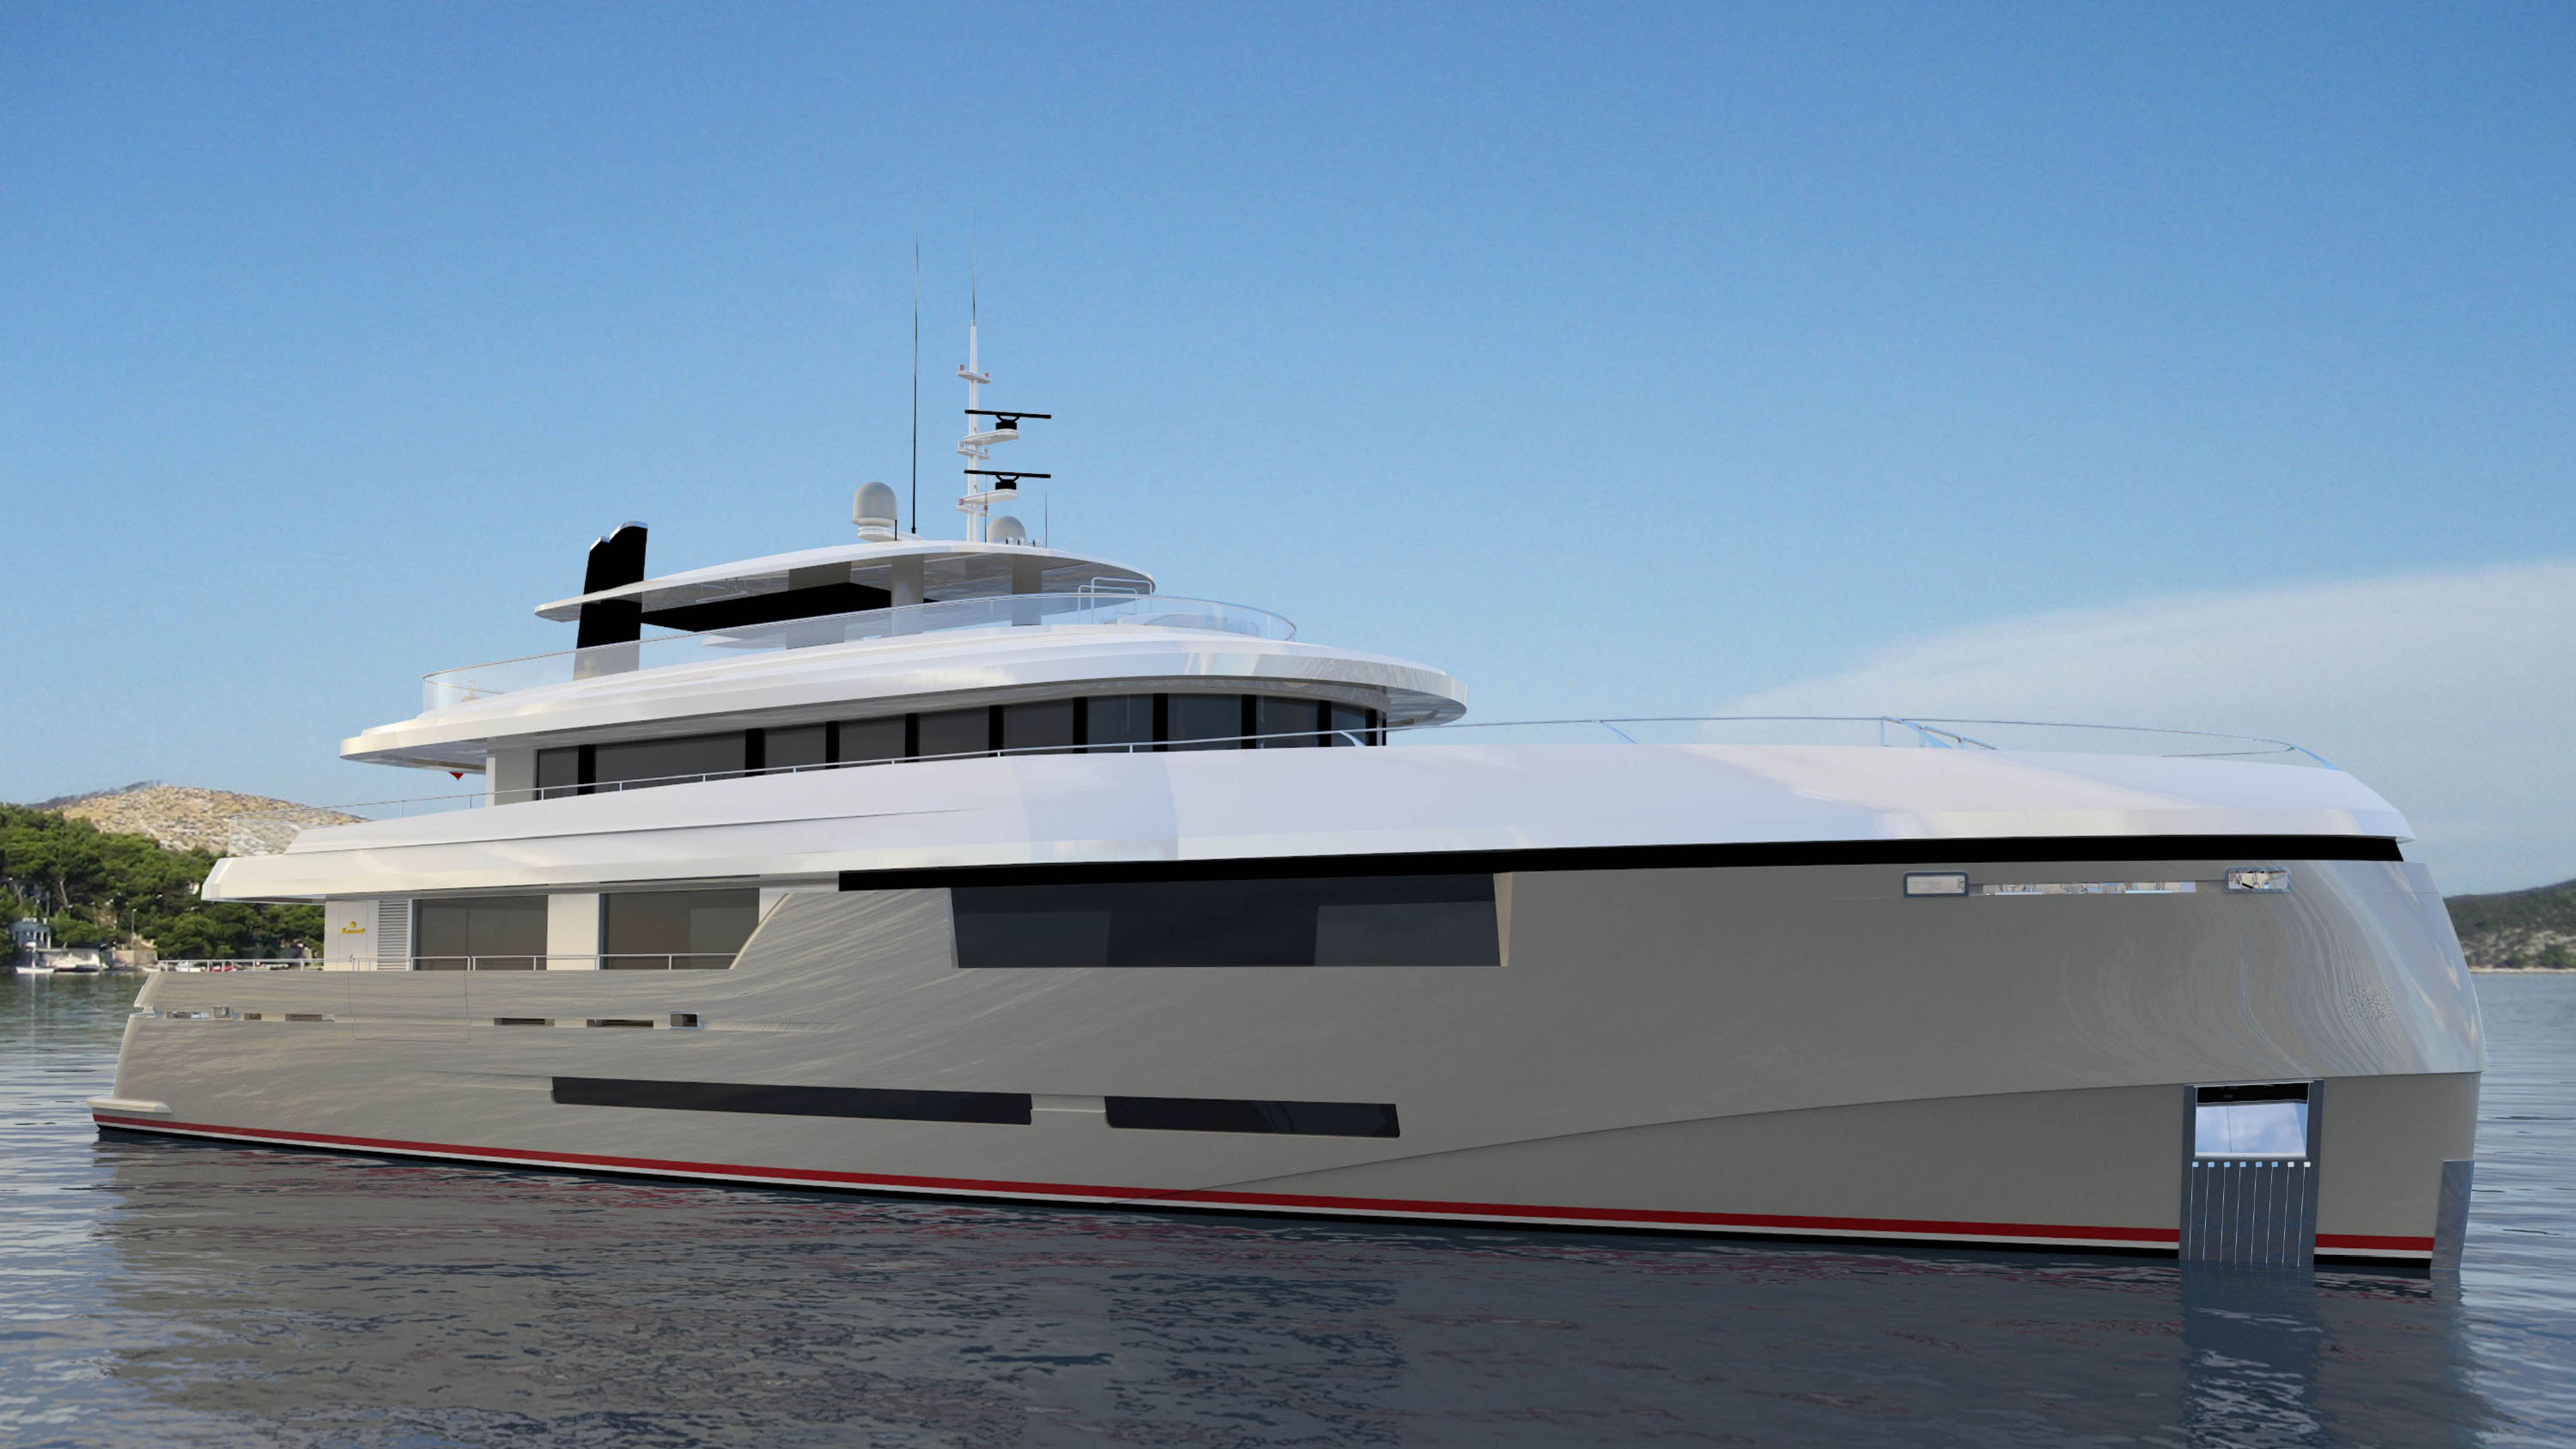 PEARL-yacht-for-sale-for-charter-vbs-01.jpg